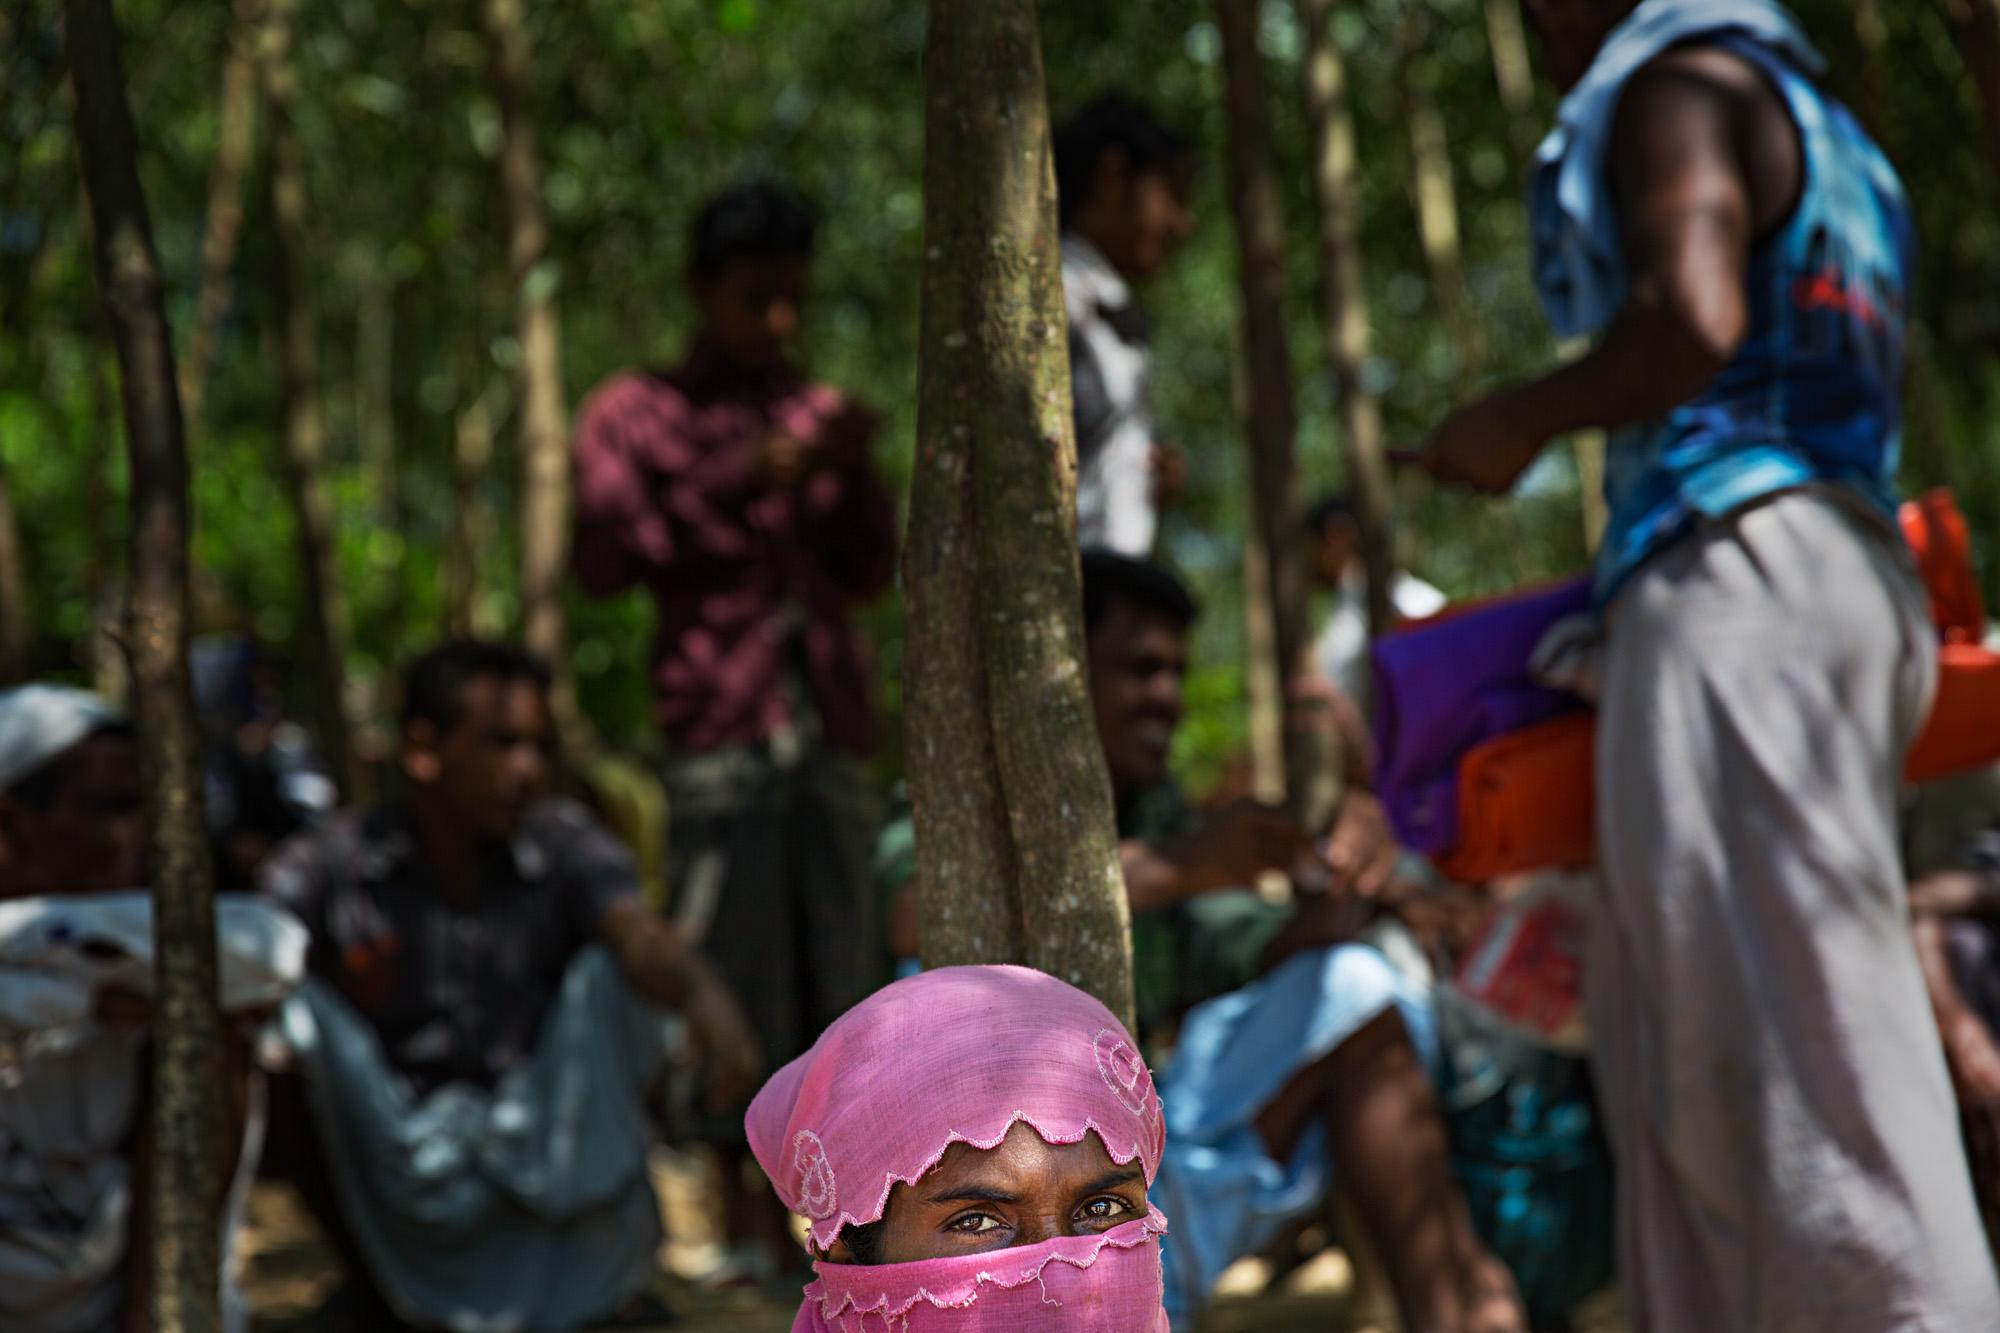 A Rohingya refugee sits in the shade waiting to be given a small plot of land in one of the refugee camps outside Cox's Bazar, Bangladesh. New arrivals can wait for days to be given a small section of camp on which to build a makeshift lean-to.